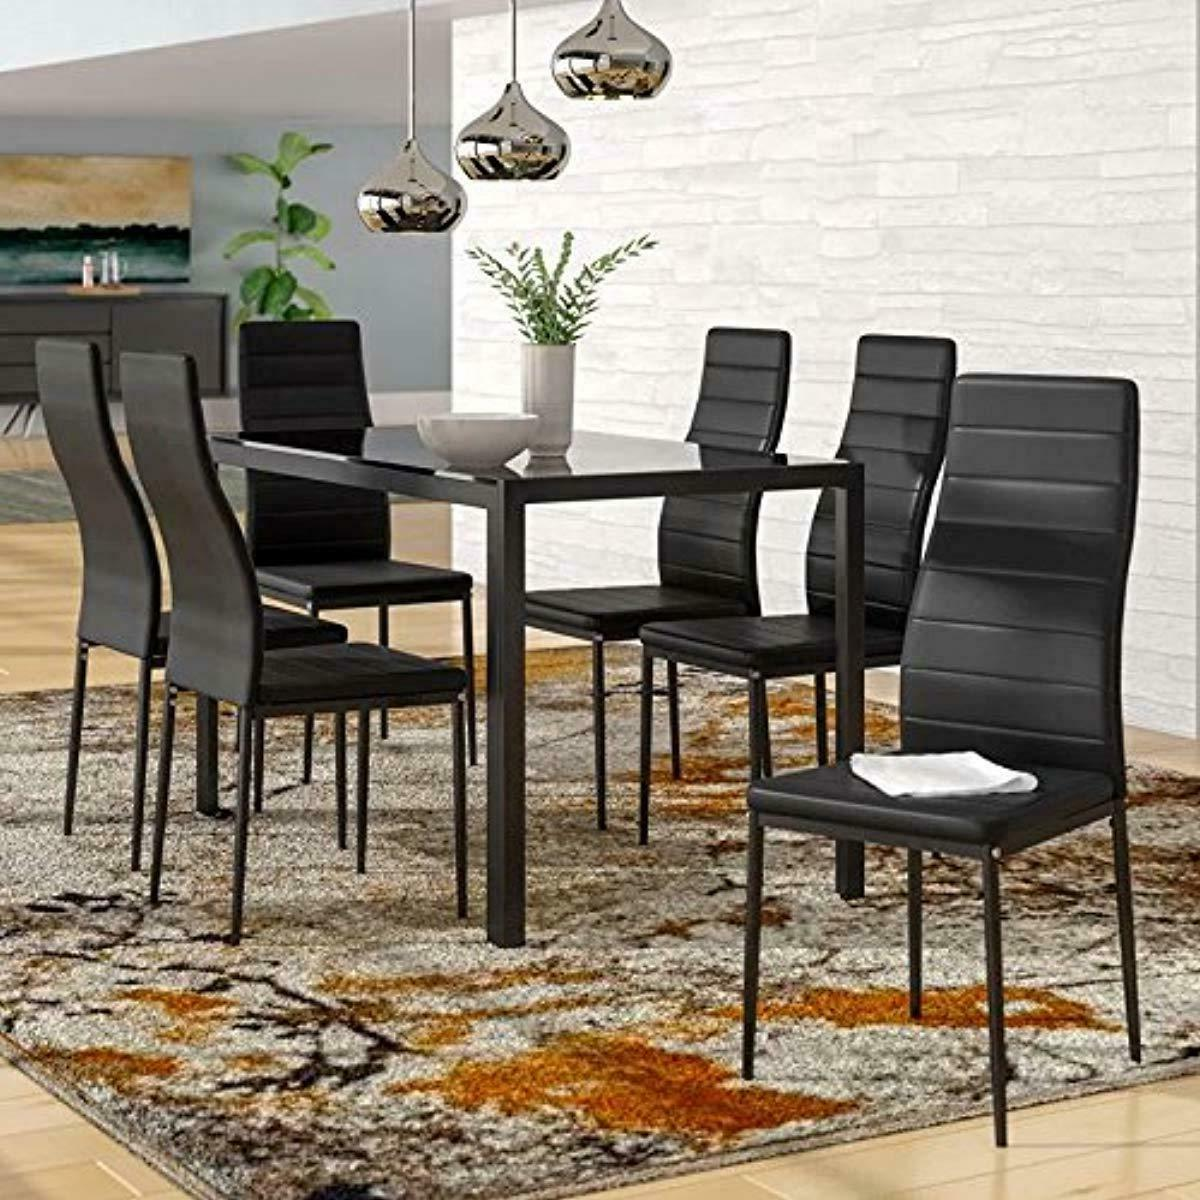 ids online 7 pieces modern glass dining